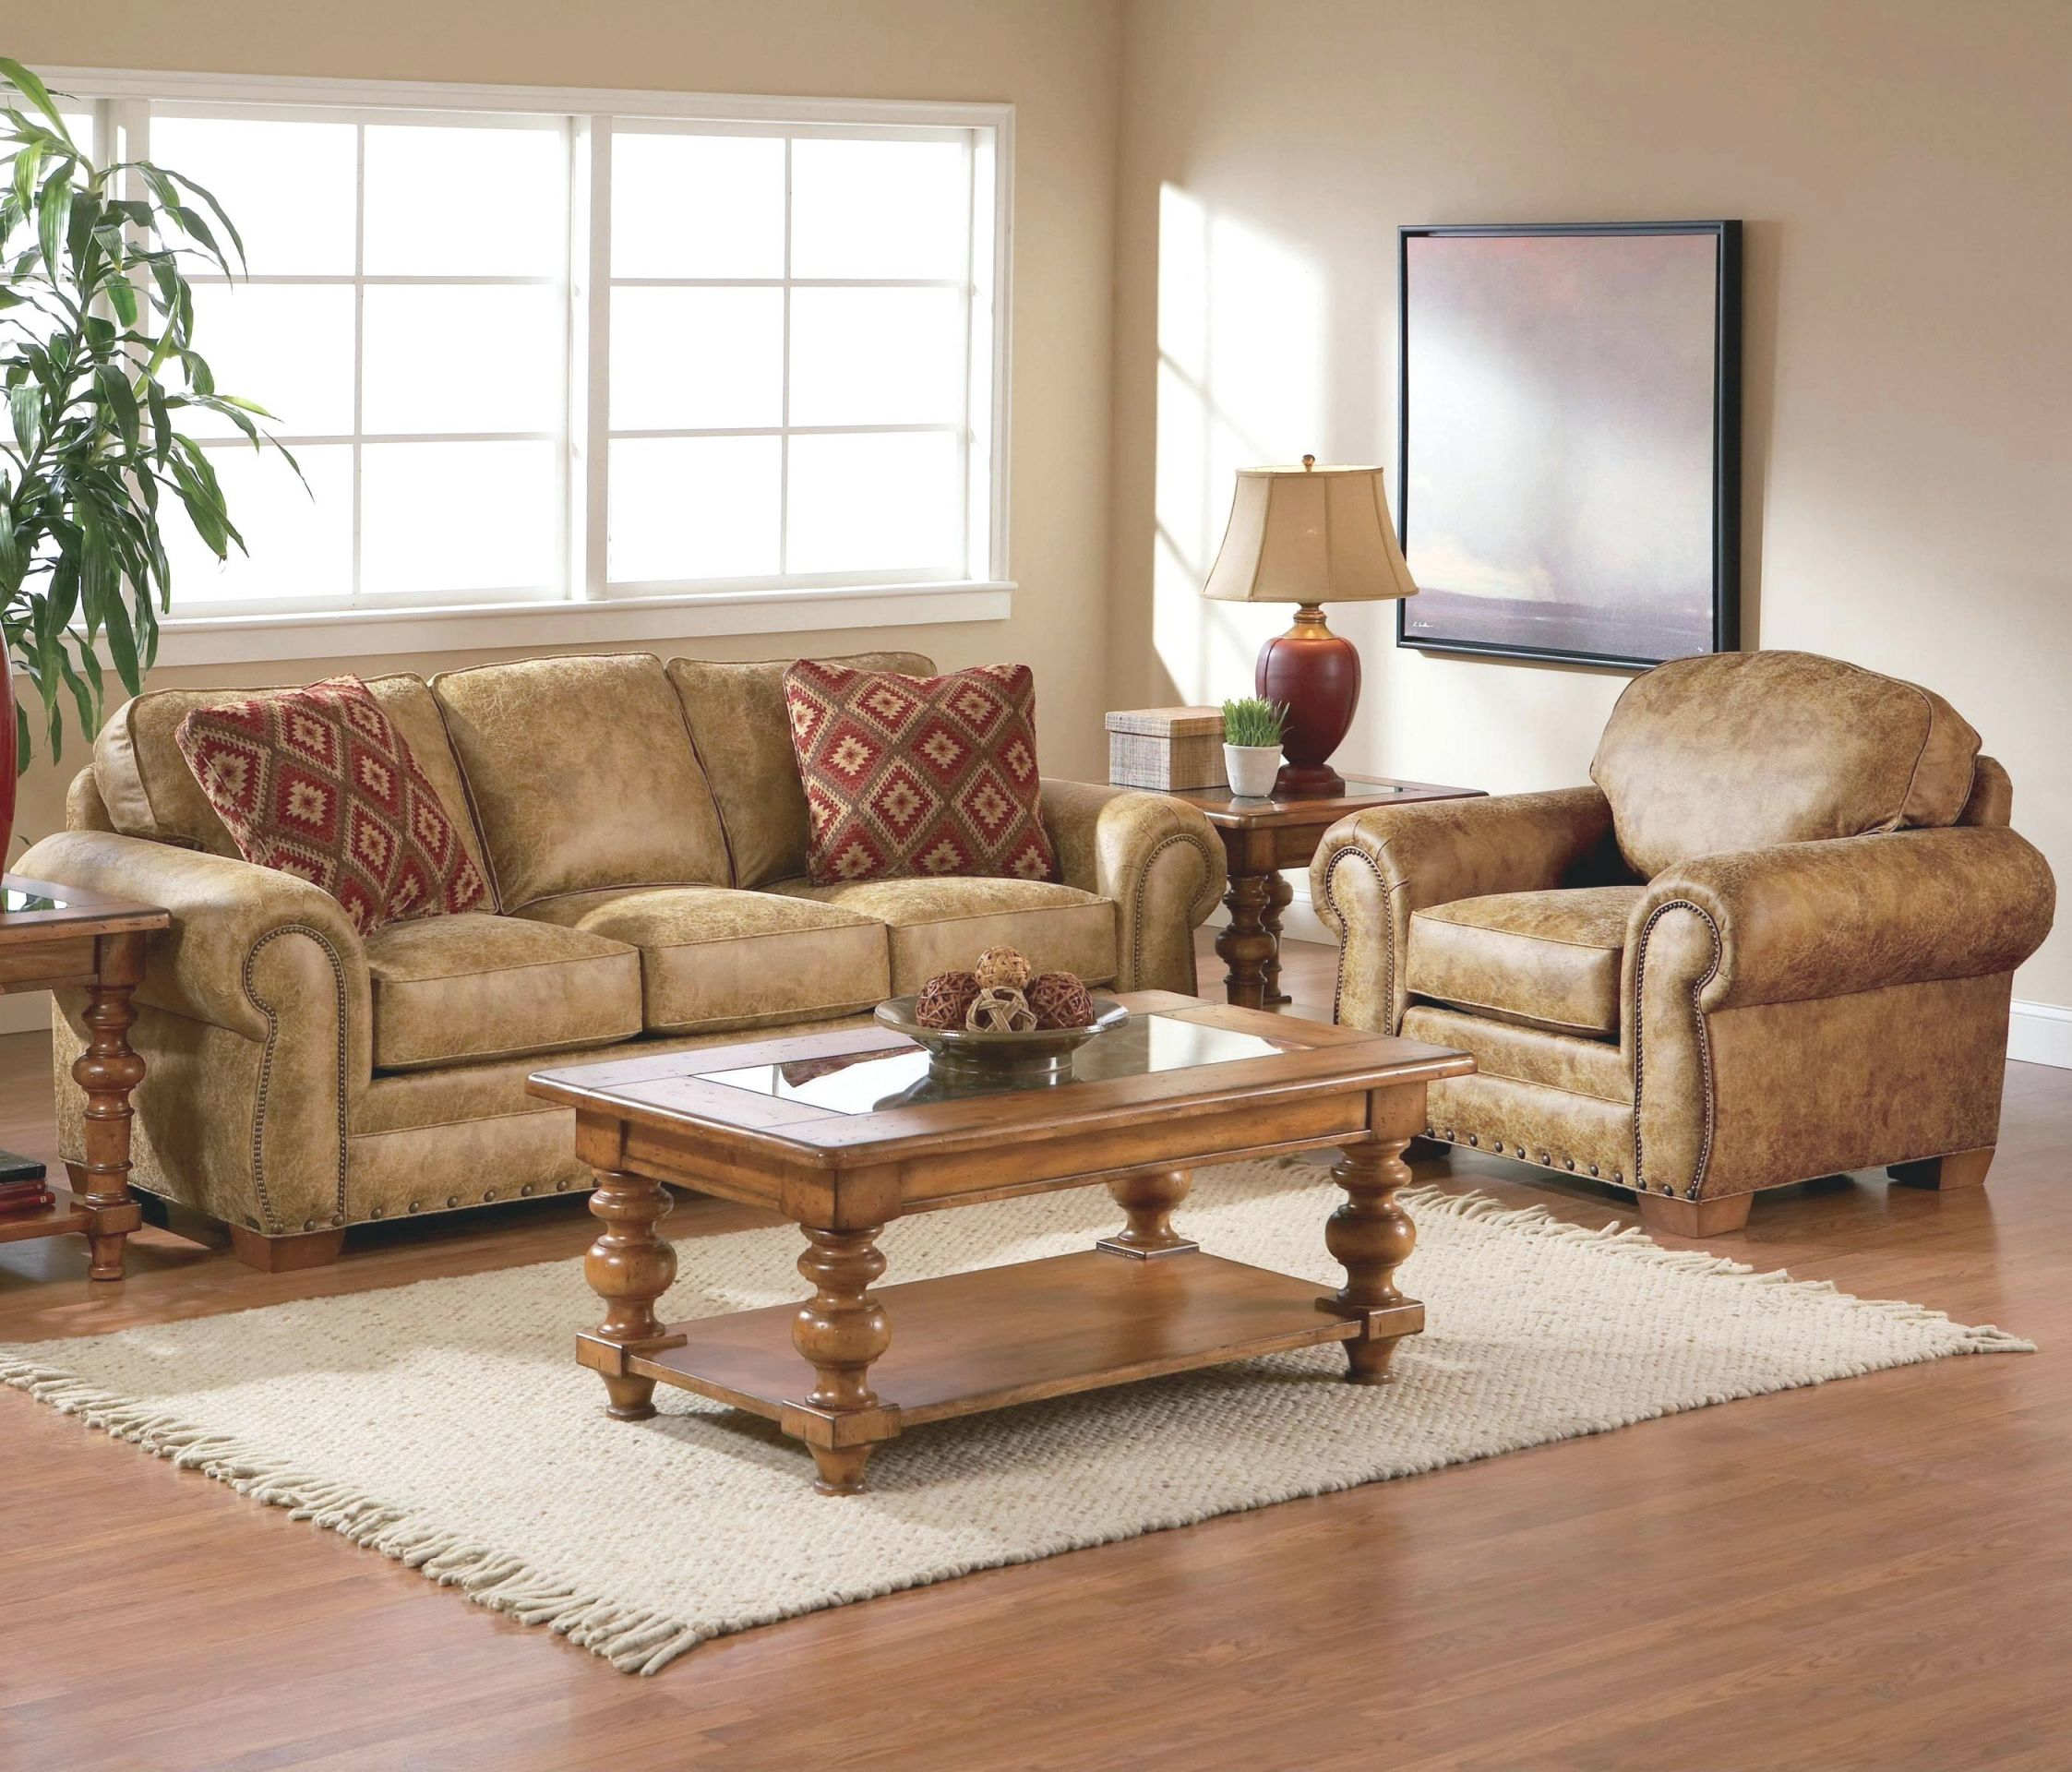 Broyhill Furniture Quality – Horizonclothing.co with regard to Broyhill Living Room Furniture